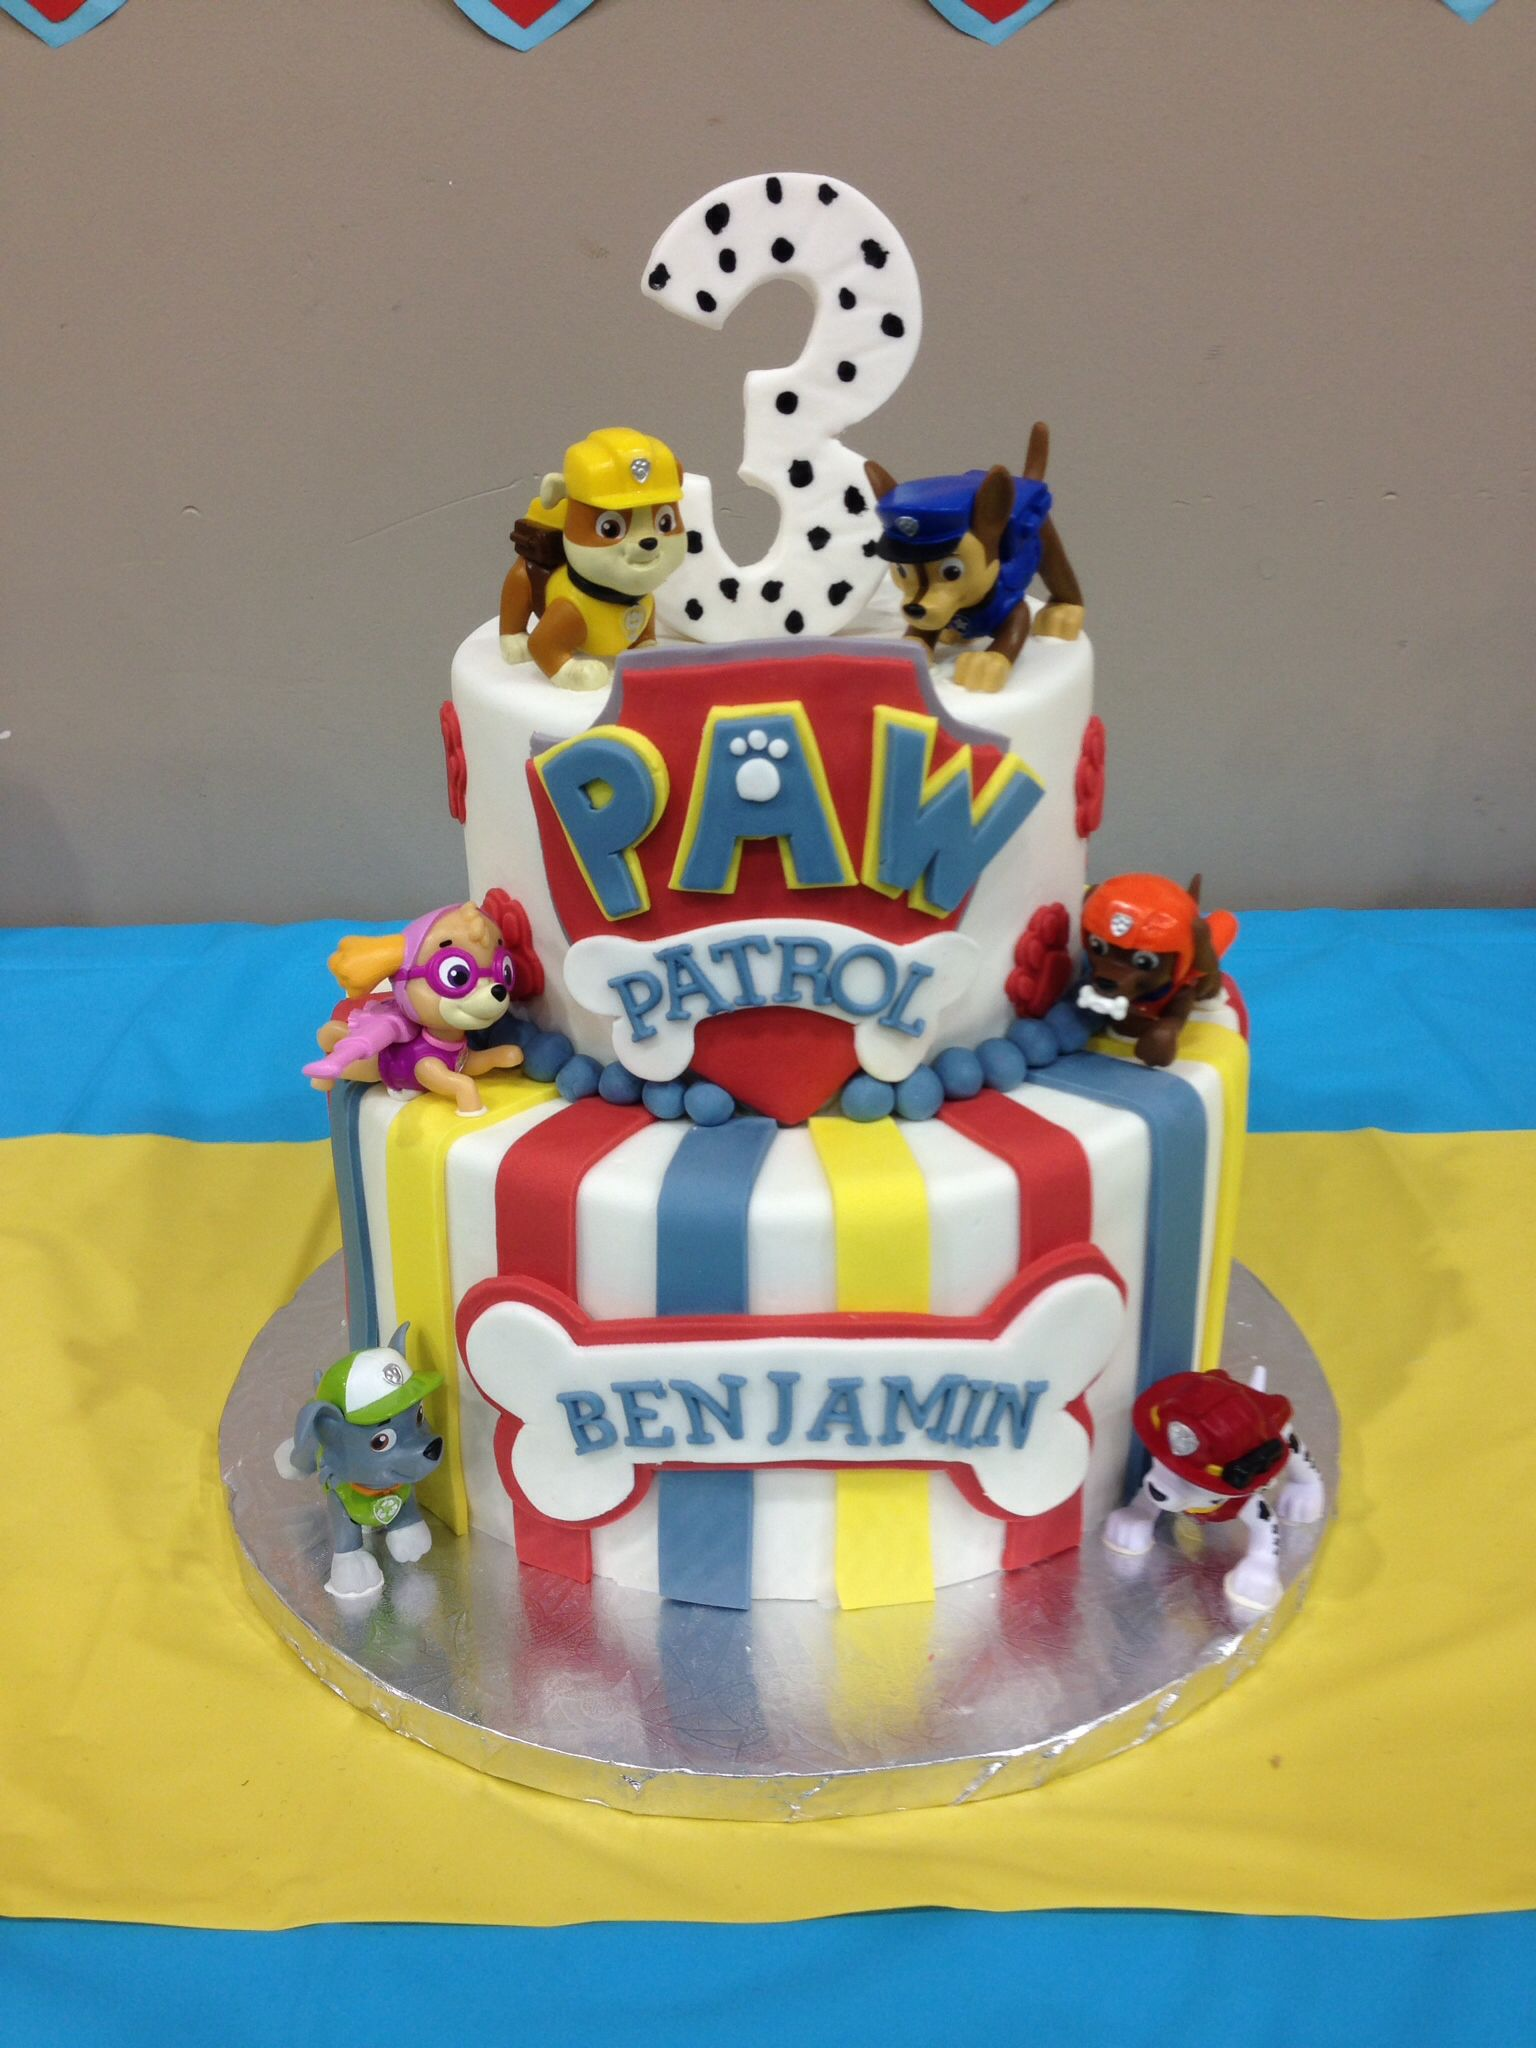 Brilliant Paw Patrol Cake By Sweet Serendipity In Tulsa Ok With Images Personalised Birthday Cards Veneteletsinfo